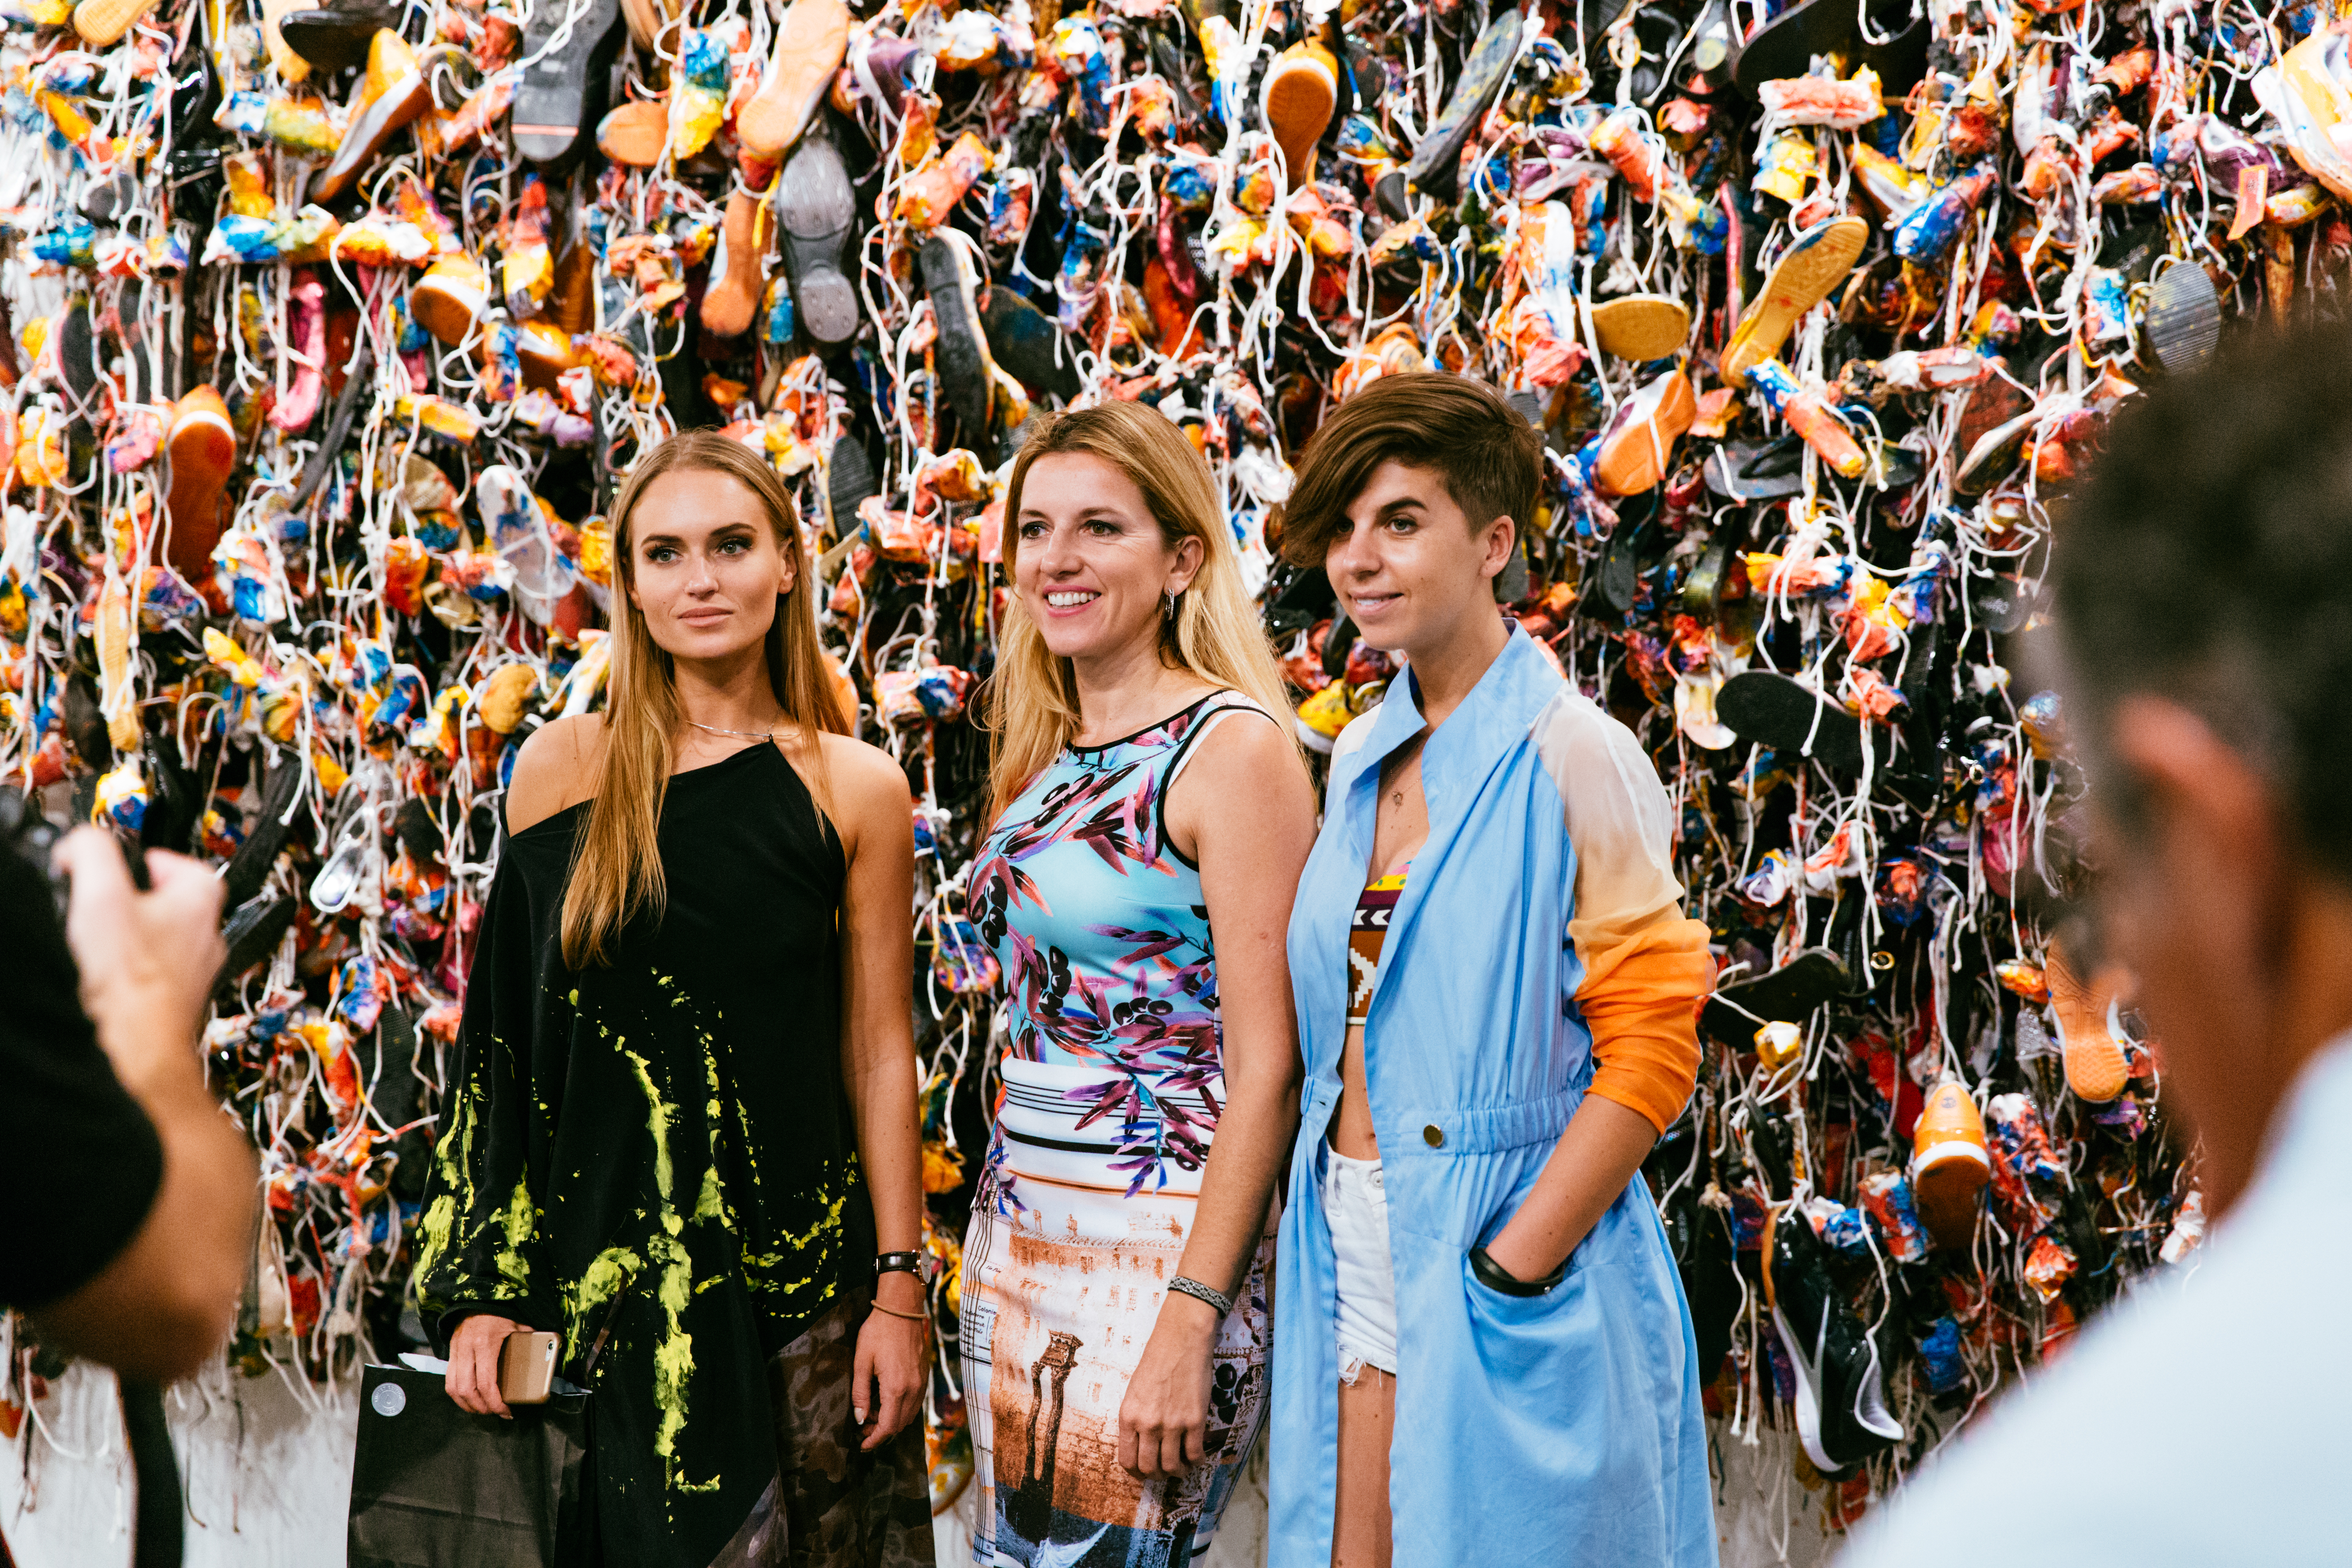 The Best Street Style From Miami's Art Basel